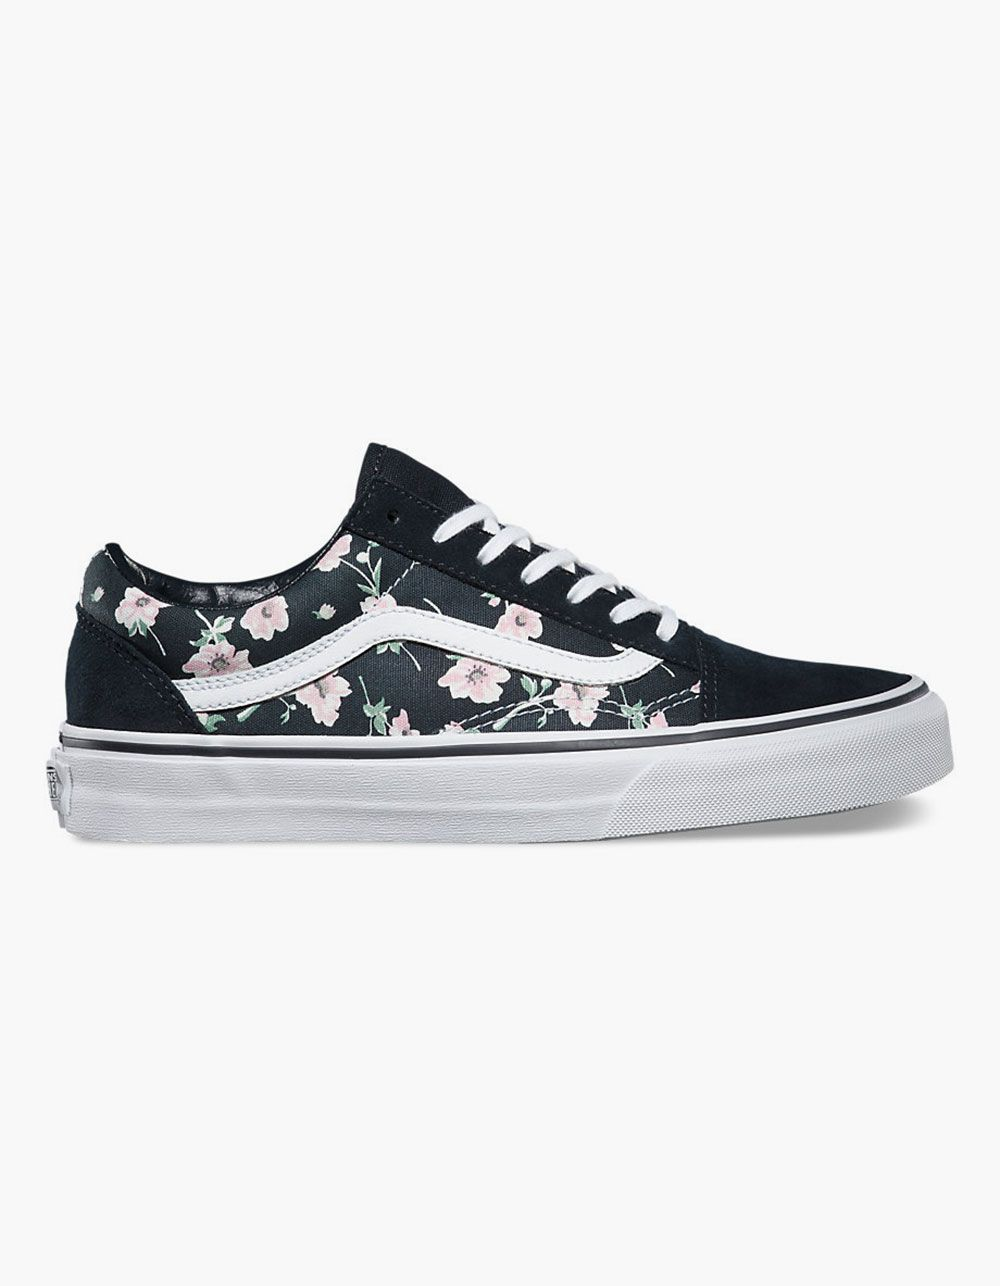 7bd78cce981 VANS Vintage Floral Old Skool Womens Shoes 261809957